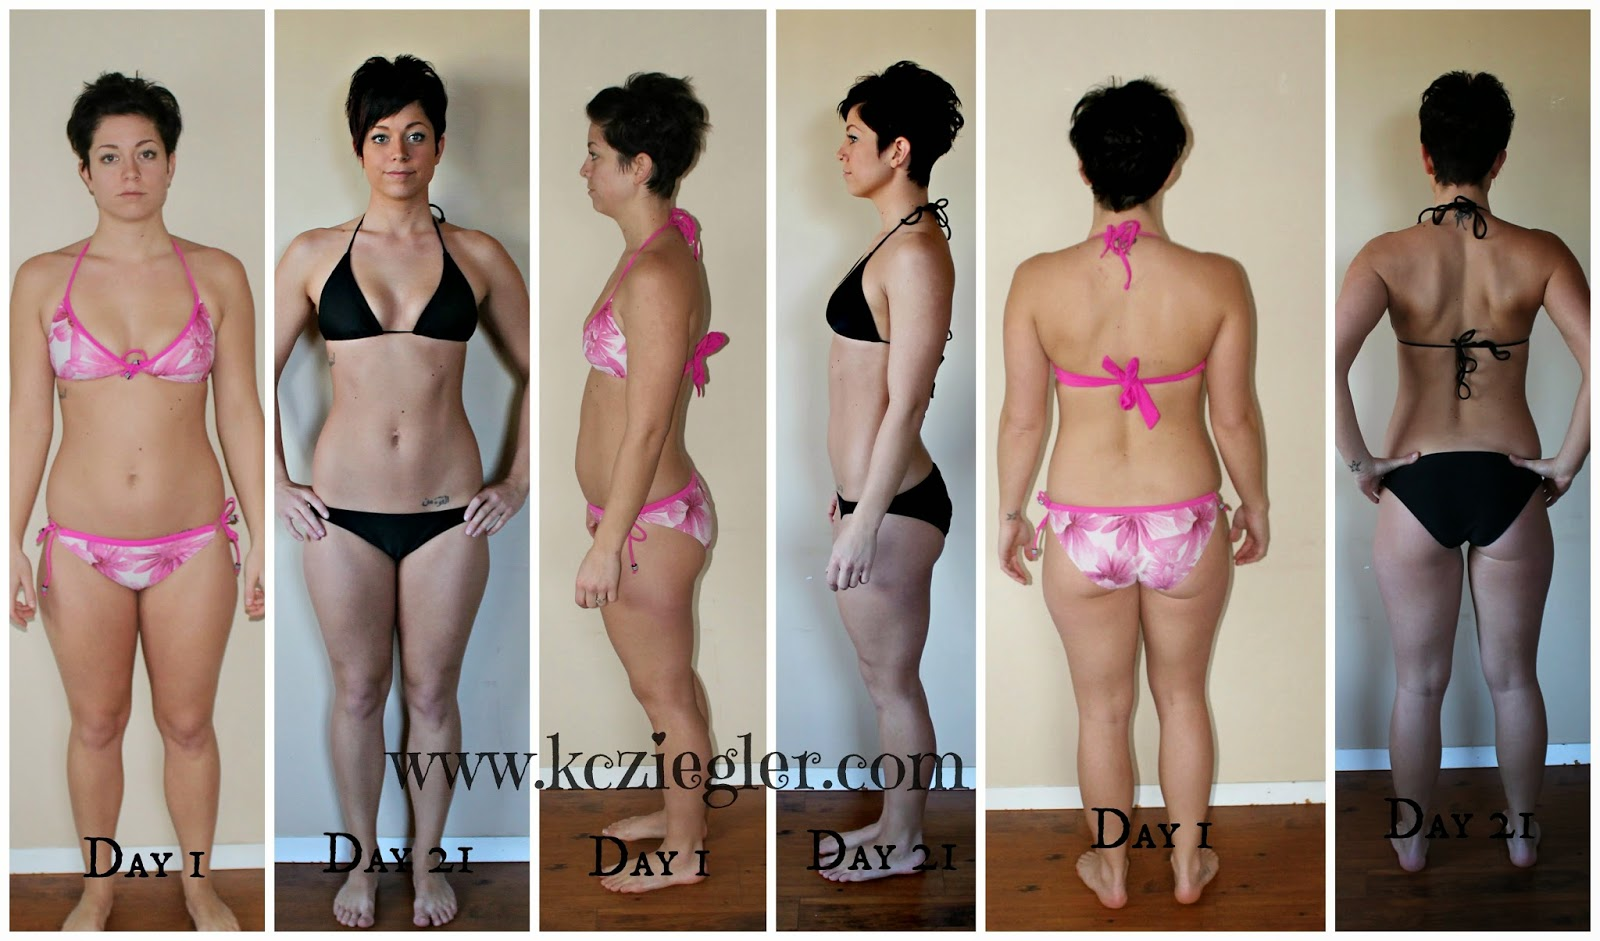 21 Day Fix Review 21 day fix results: